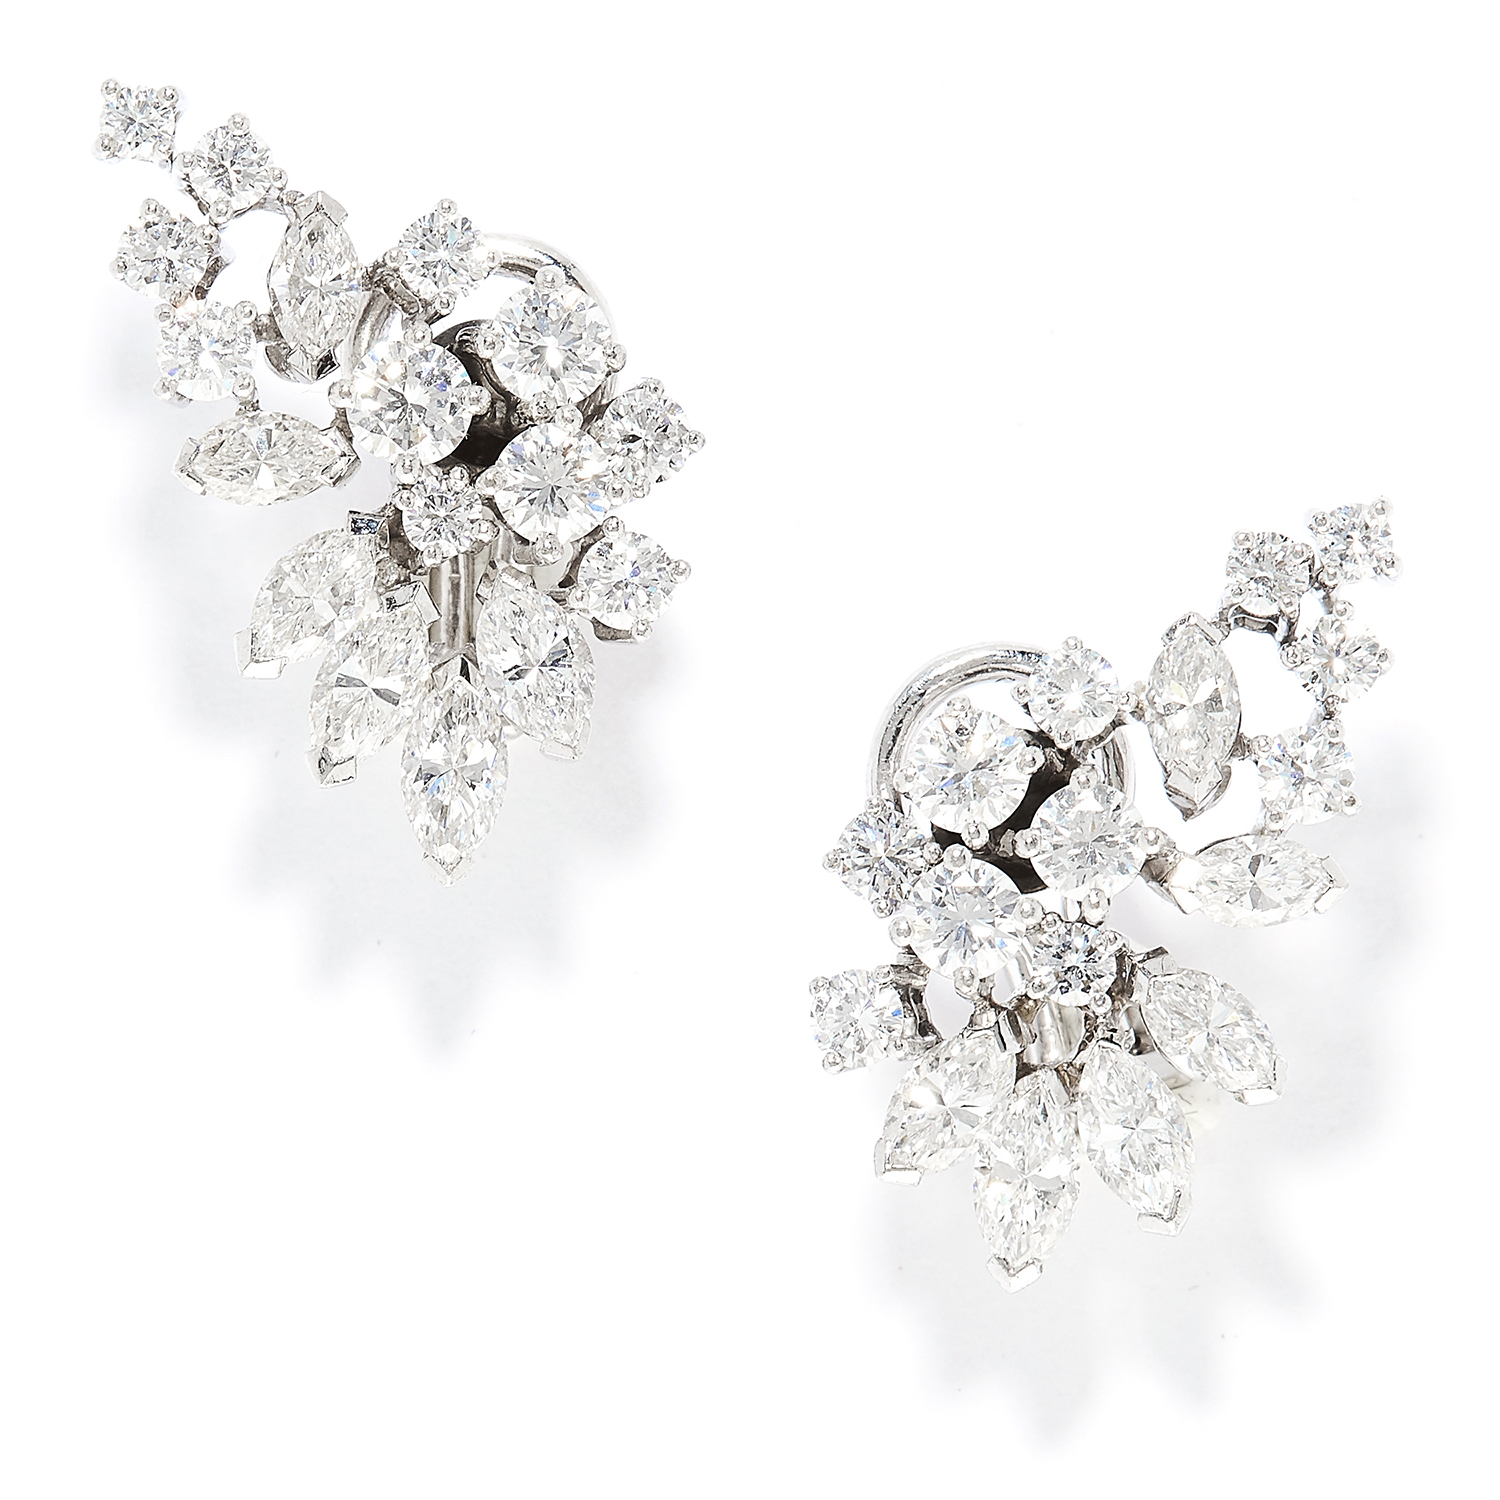 Los 50 - 3.50 CARAT DIAMOND EARRINGS in 18ct white gold, in foliate motif set with round and marquise cut